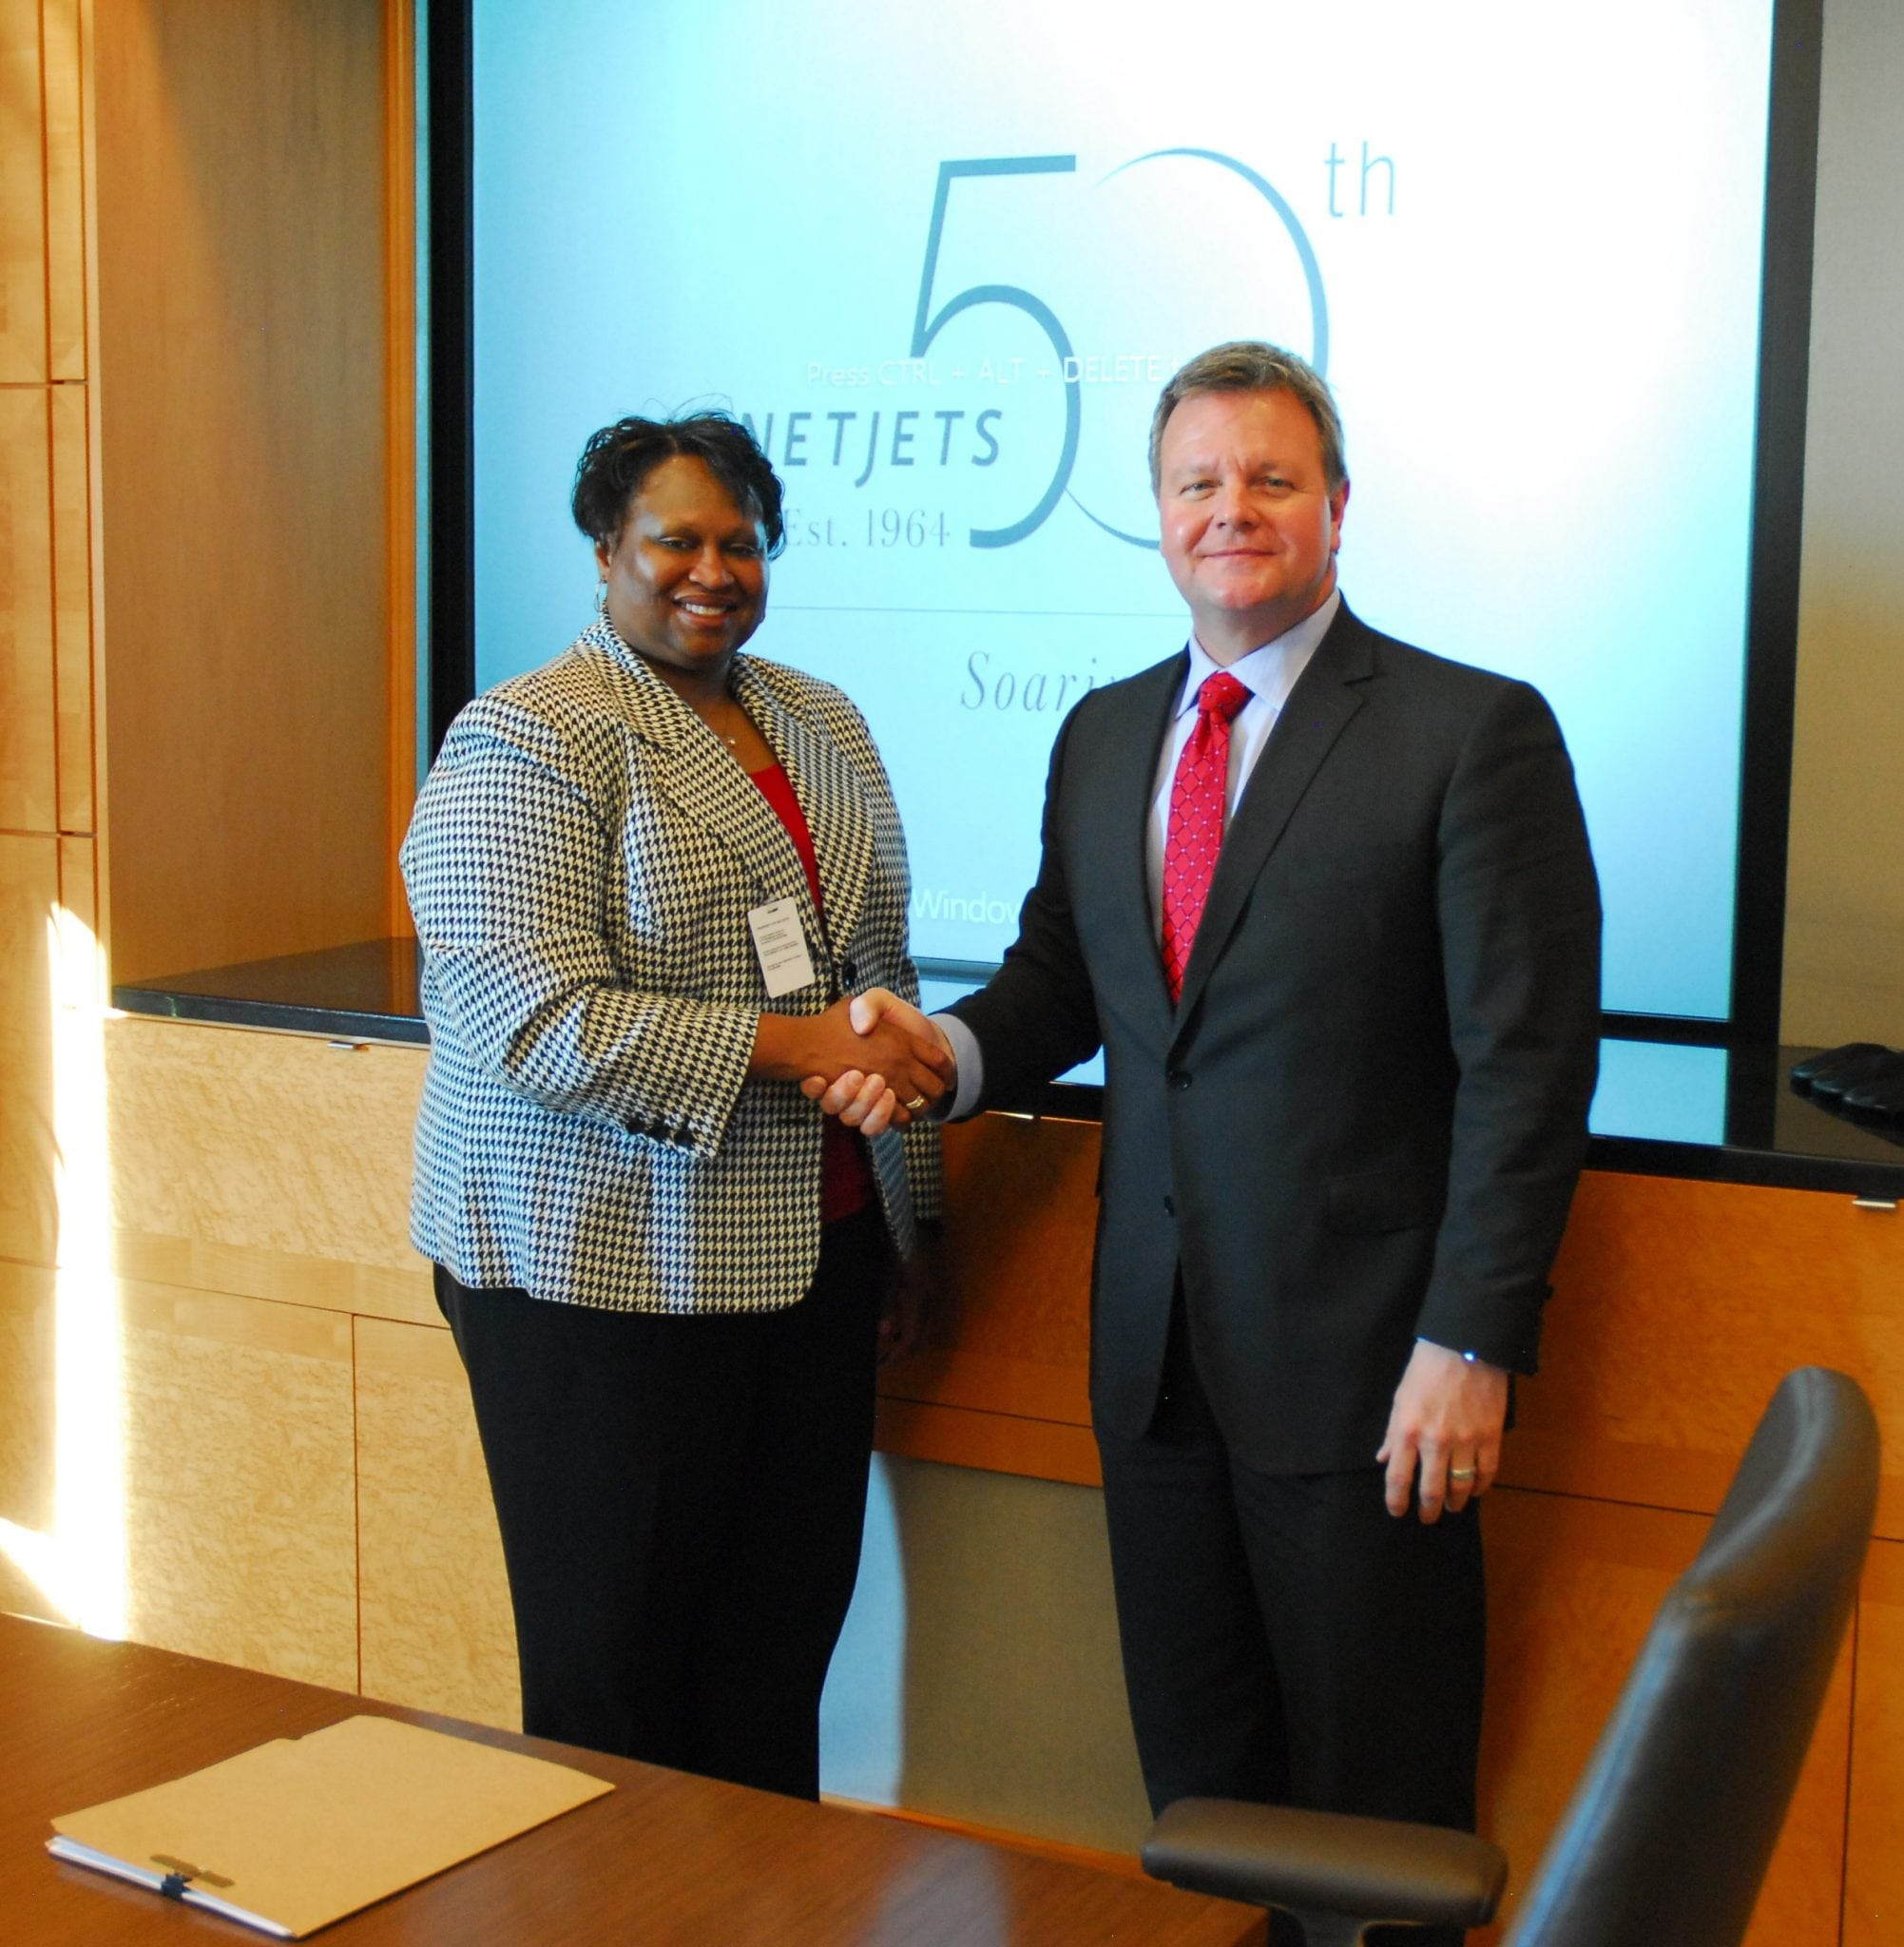 FAA Deputy Administrator for NextGen Pamela Whitley and NetJets Global Chief Operating Office and President of NetJets Aviation Bill Noe shake hands after signing new five year agreement for development and implementation of NextGen projects